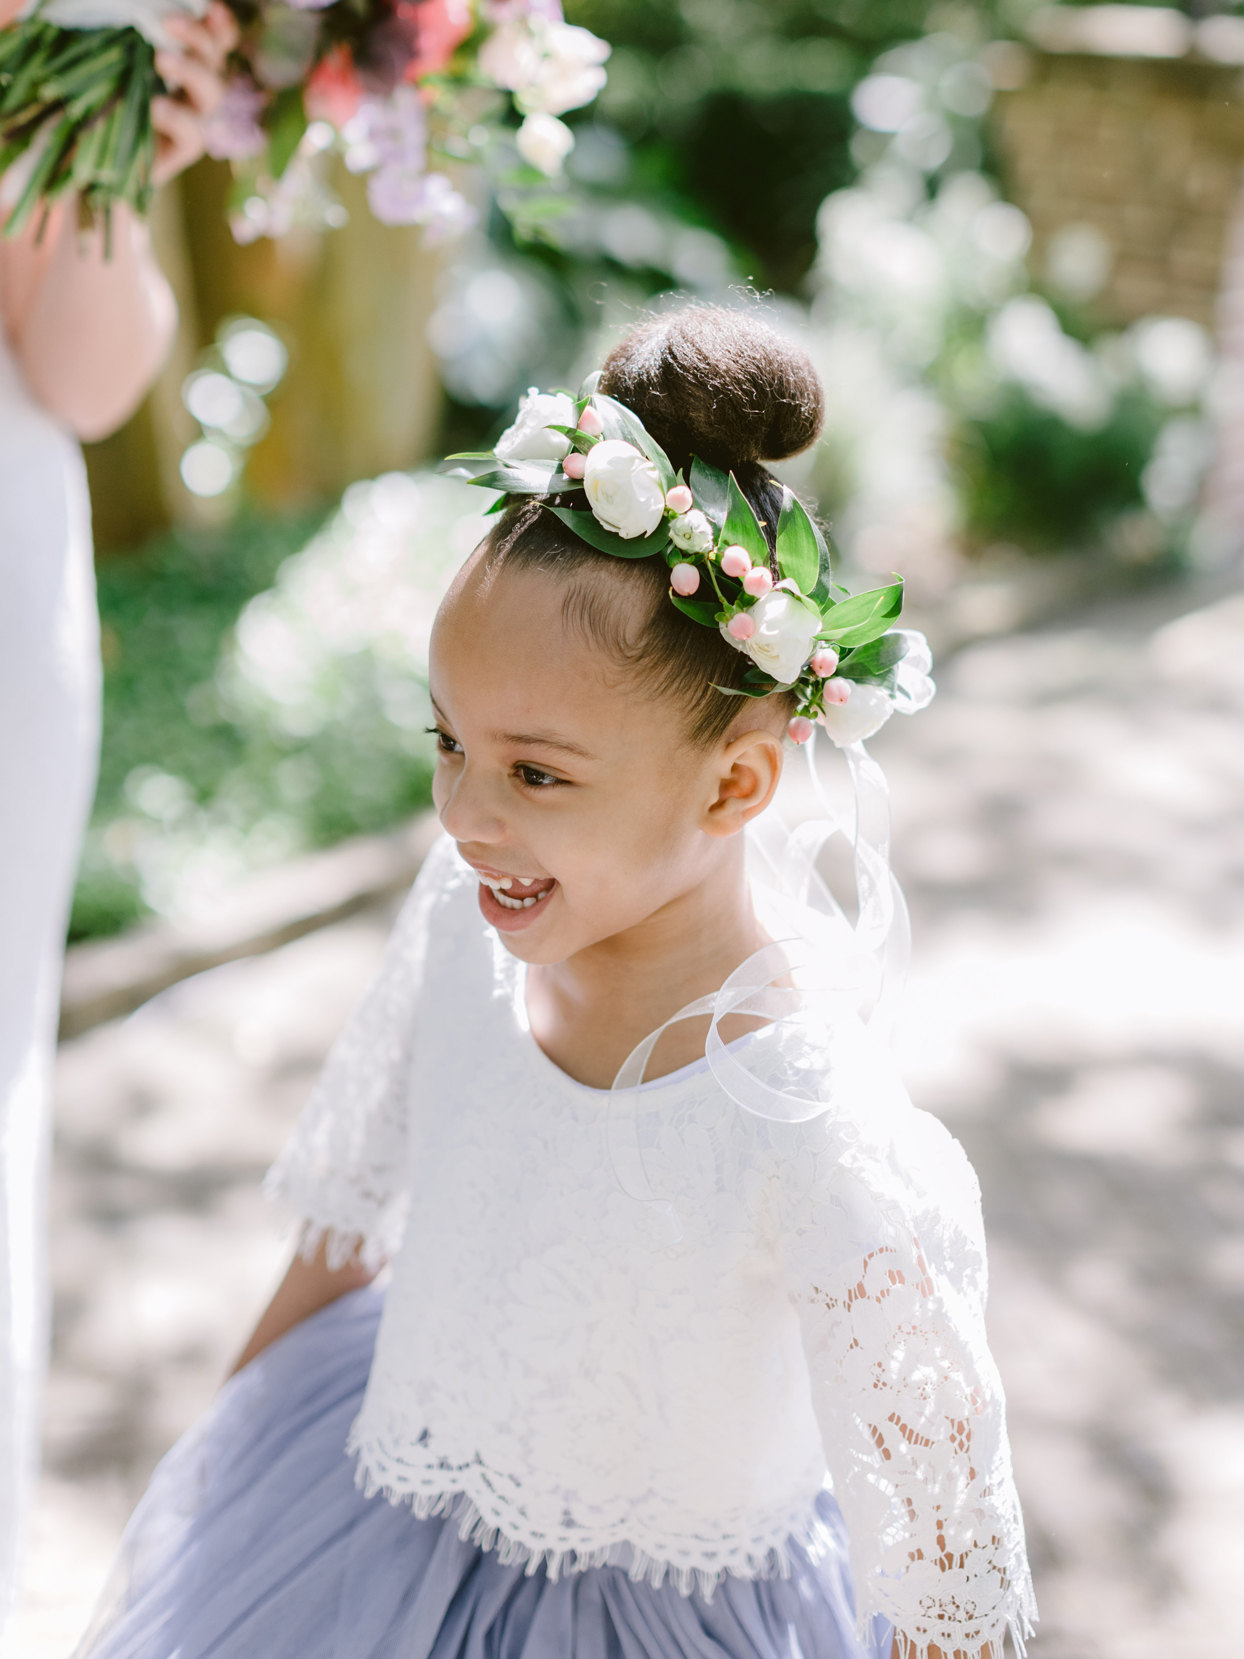 flower girl with flower crown smiling